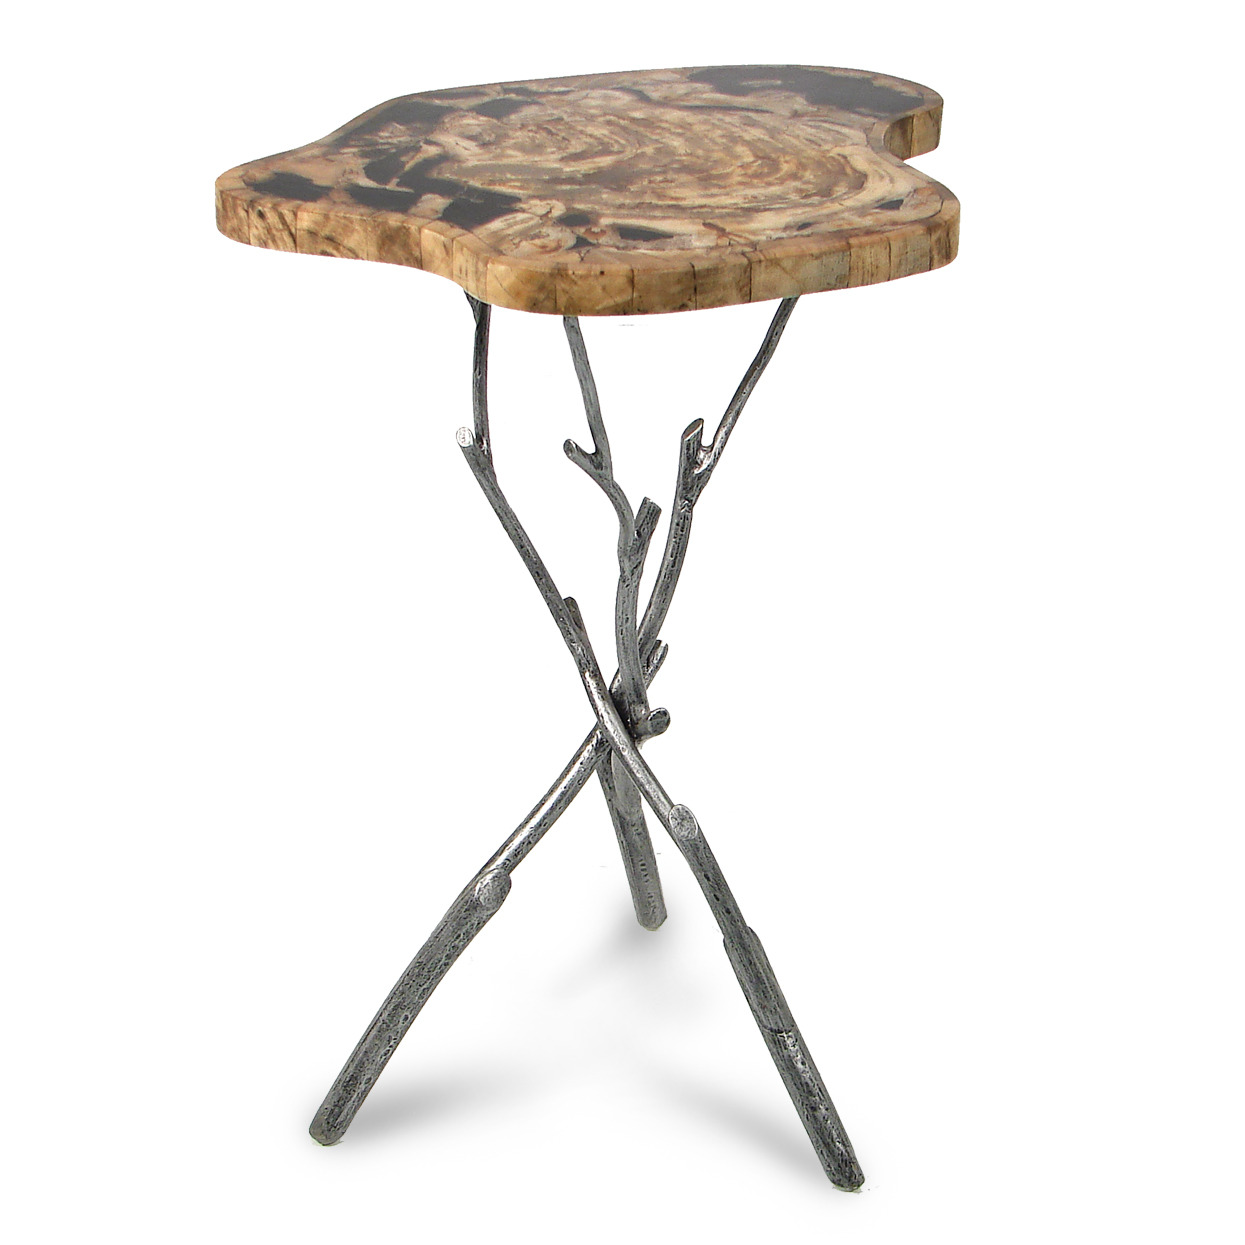 probably terrific great petrified wood end table mira road awesome side home remodel ideas with farmhouse style round dining room leaf building kitchen rustic tables wheels wooden